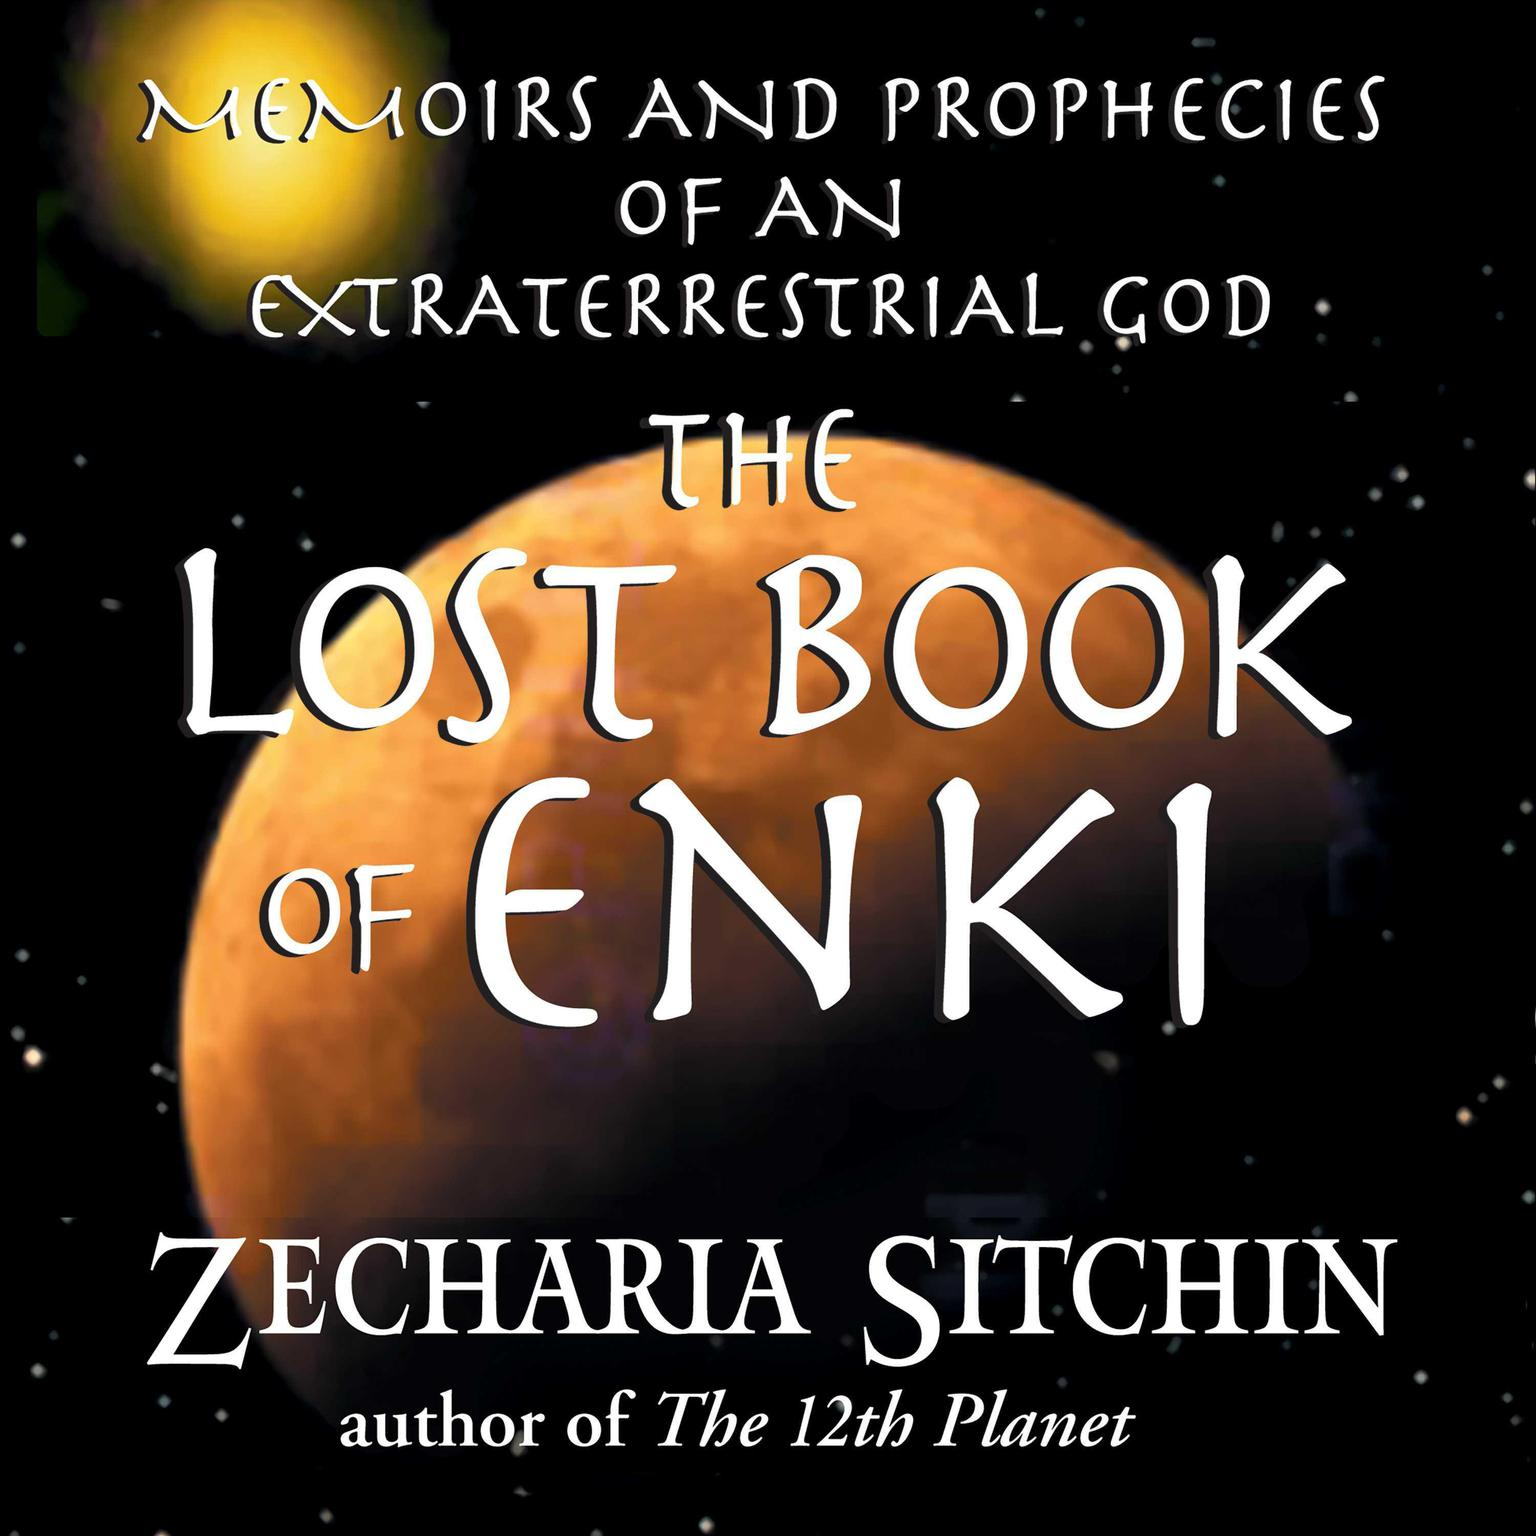 Printable The Lost Book of Enki: Memoirs and Prophecies of an Extraterrestrial God Audiobook Cover Art